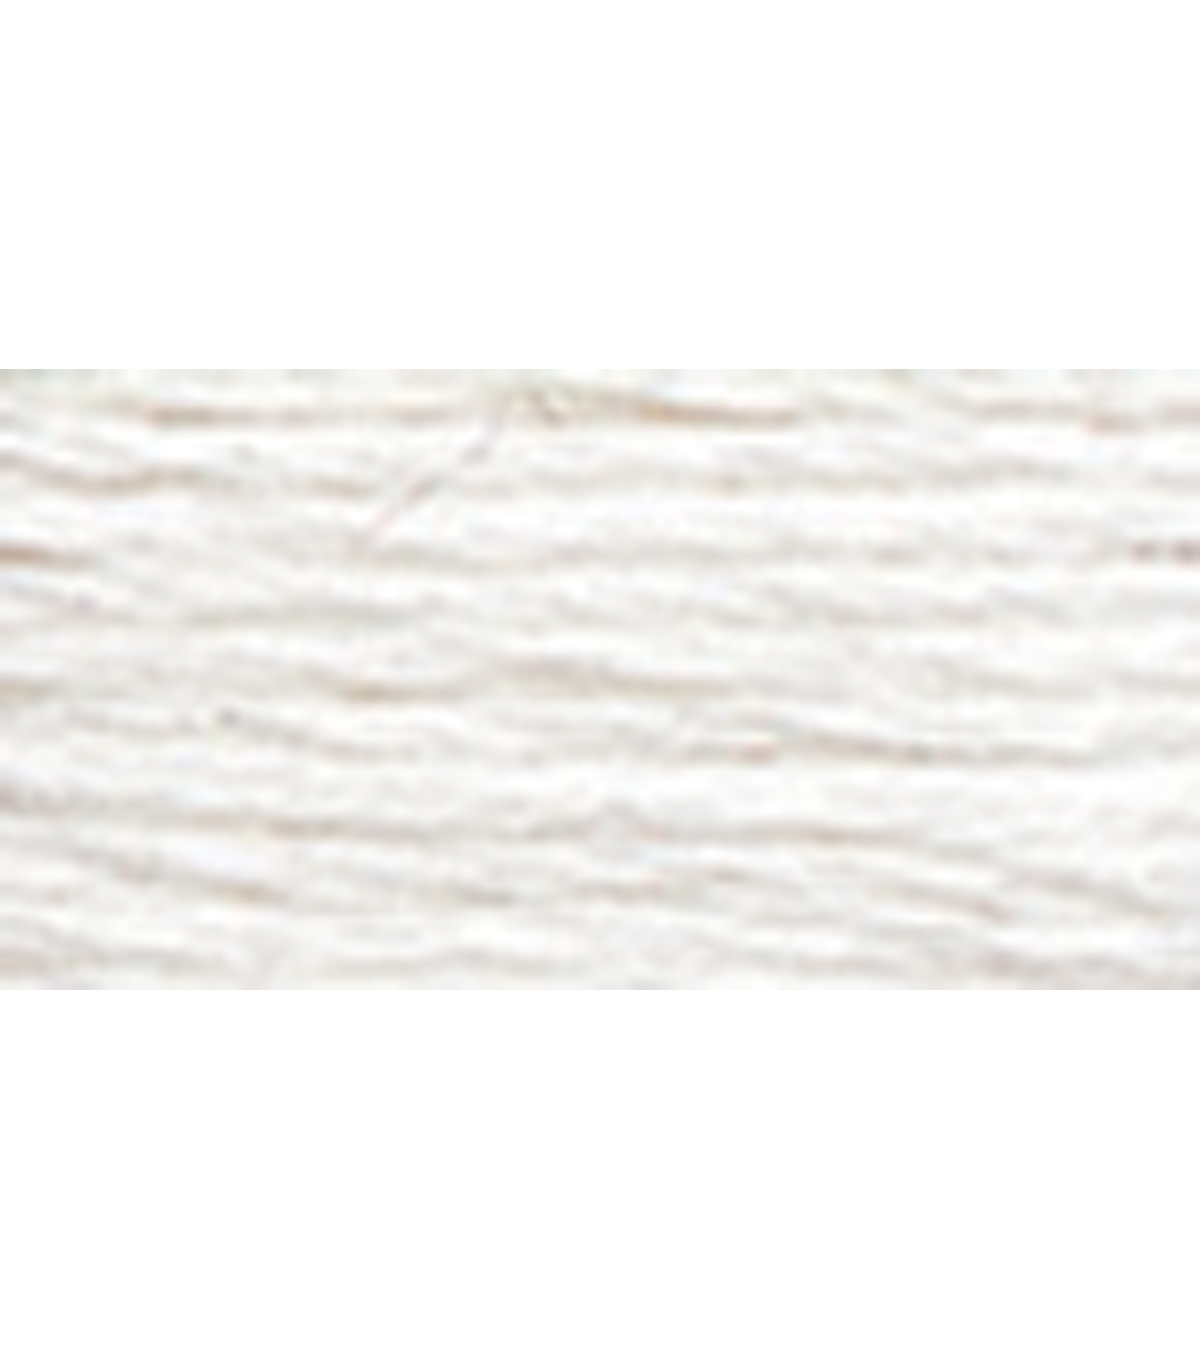 Anchor 6-Strand Embroidery Floss 8.75yd-Snow White